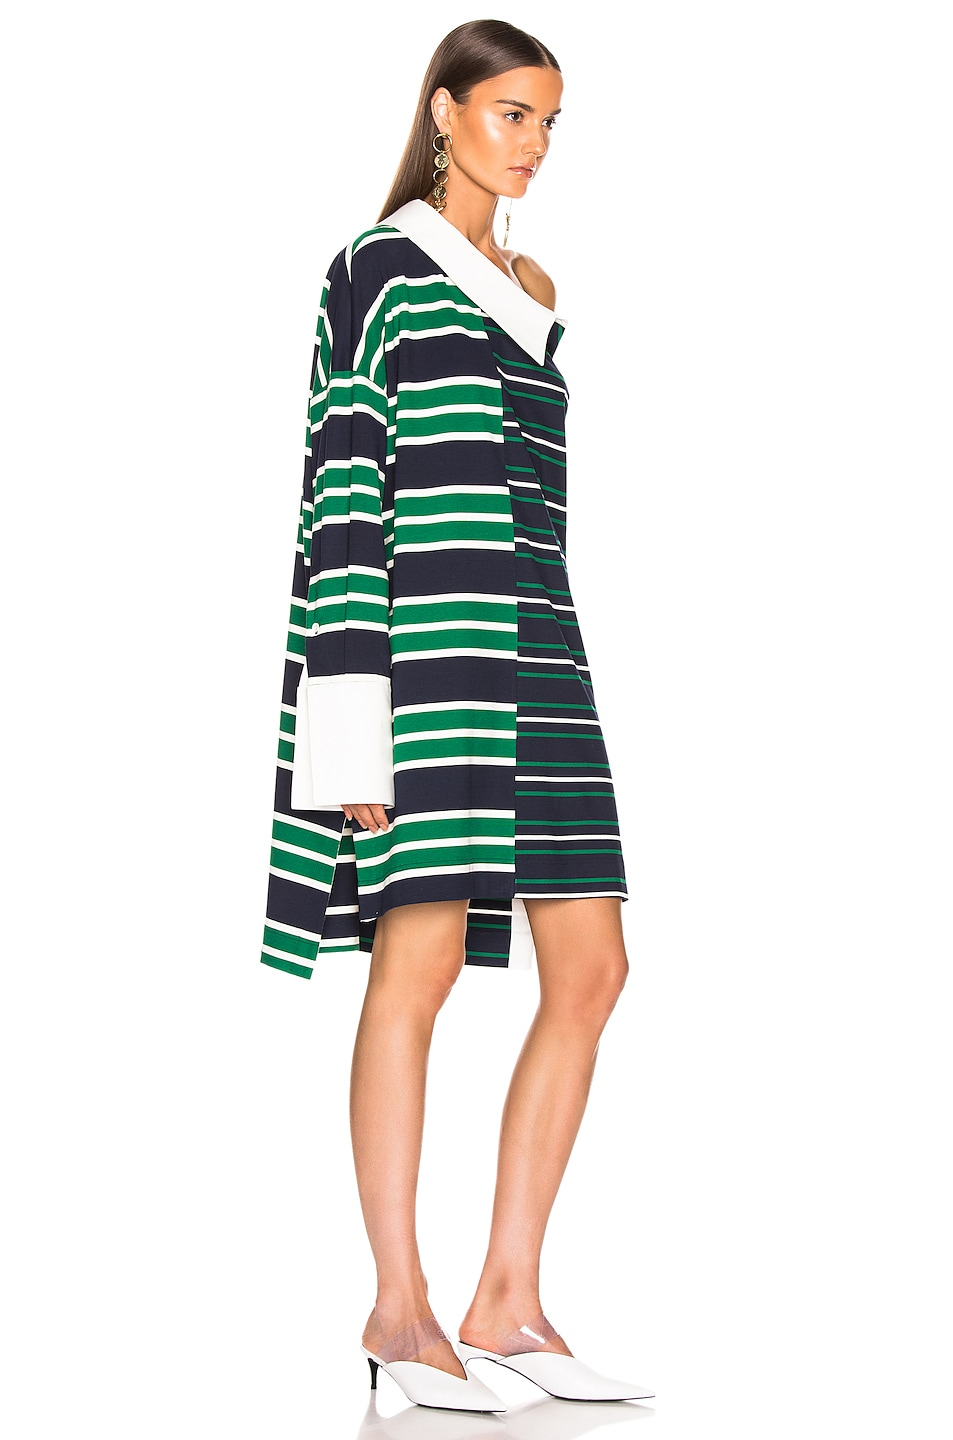 Image 2 of Monse Striped Shifted Rugby Dress in Navy, Green & Ivory